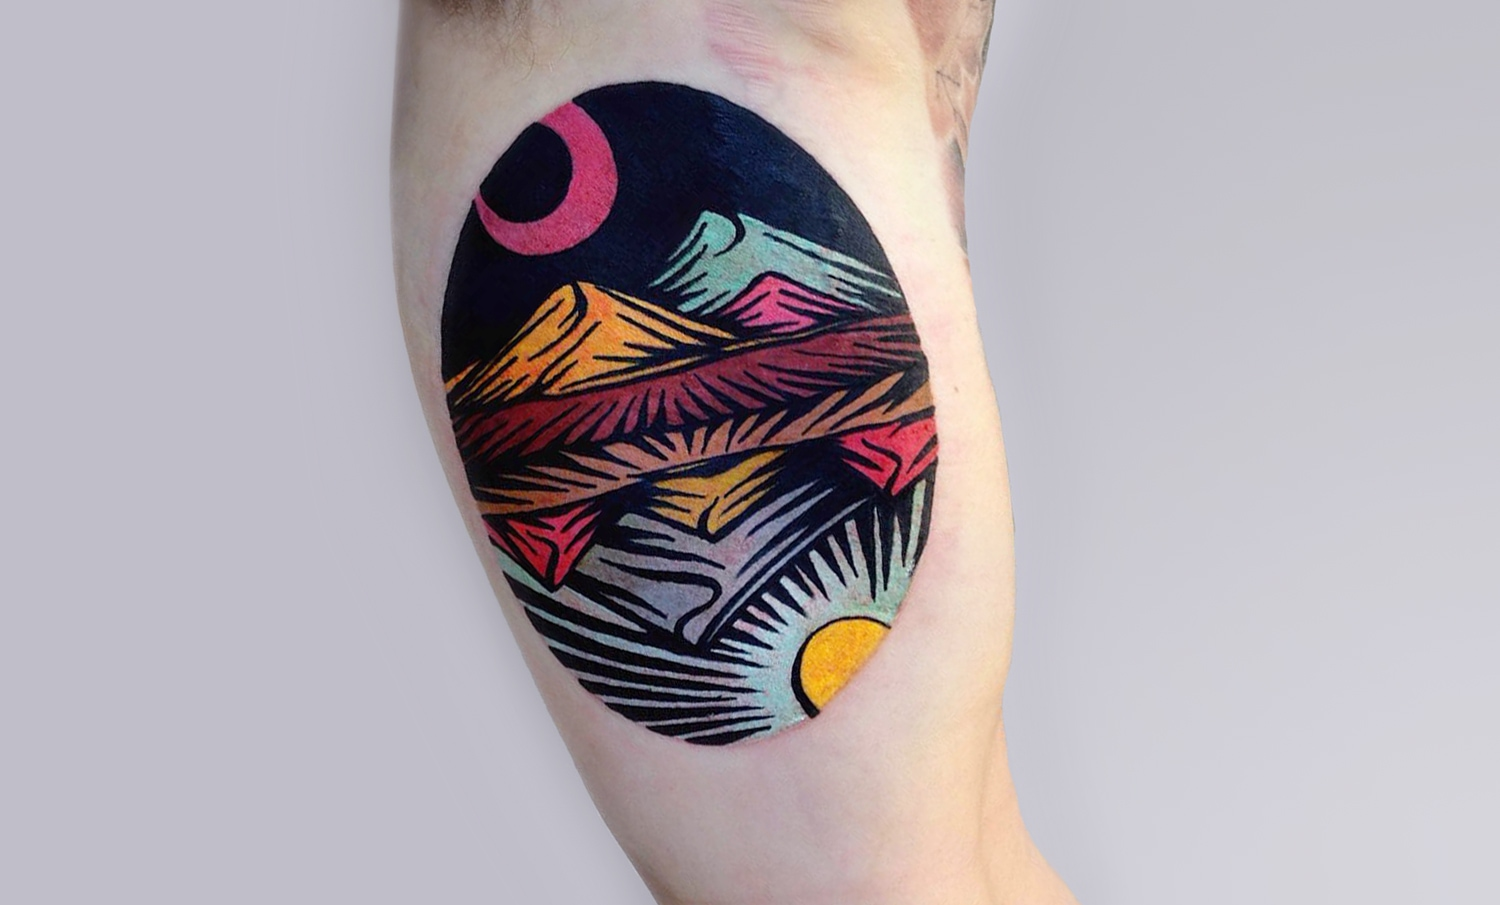 Trippy Linocut Tattoos by Dusty Past